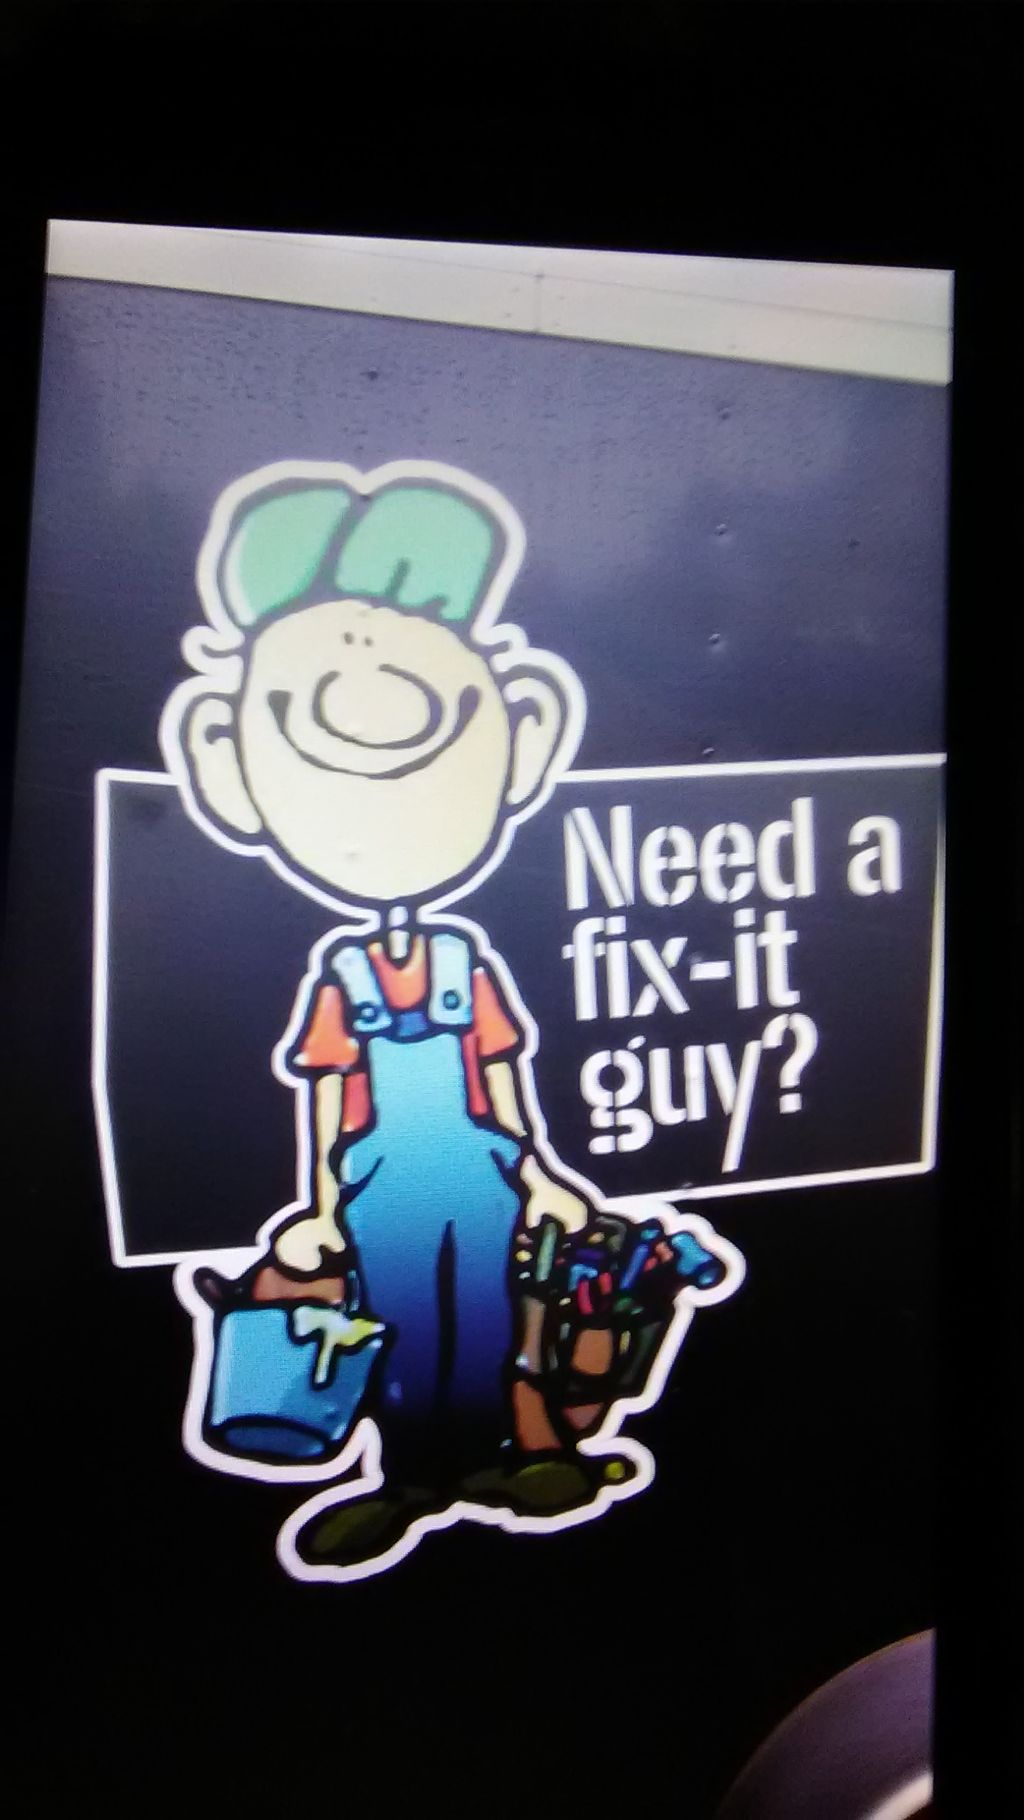 fixitguy handyman and cleaning services